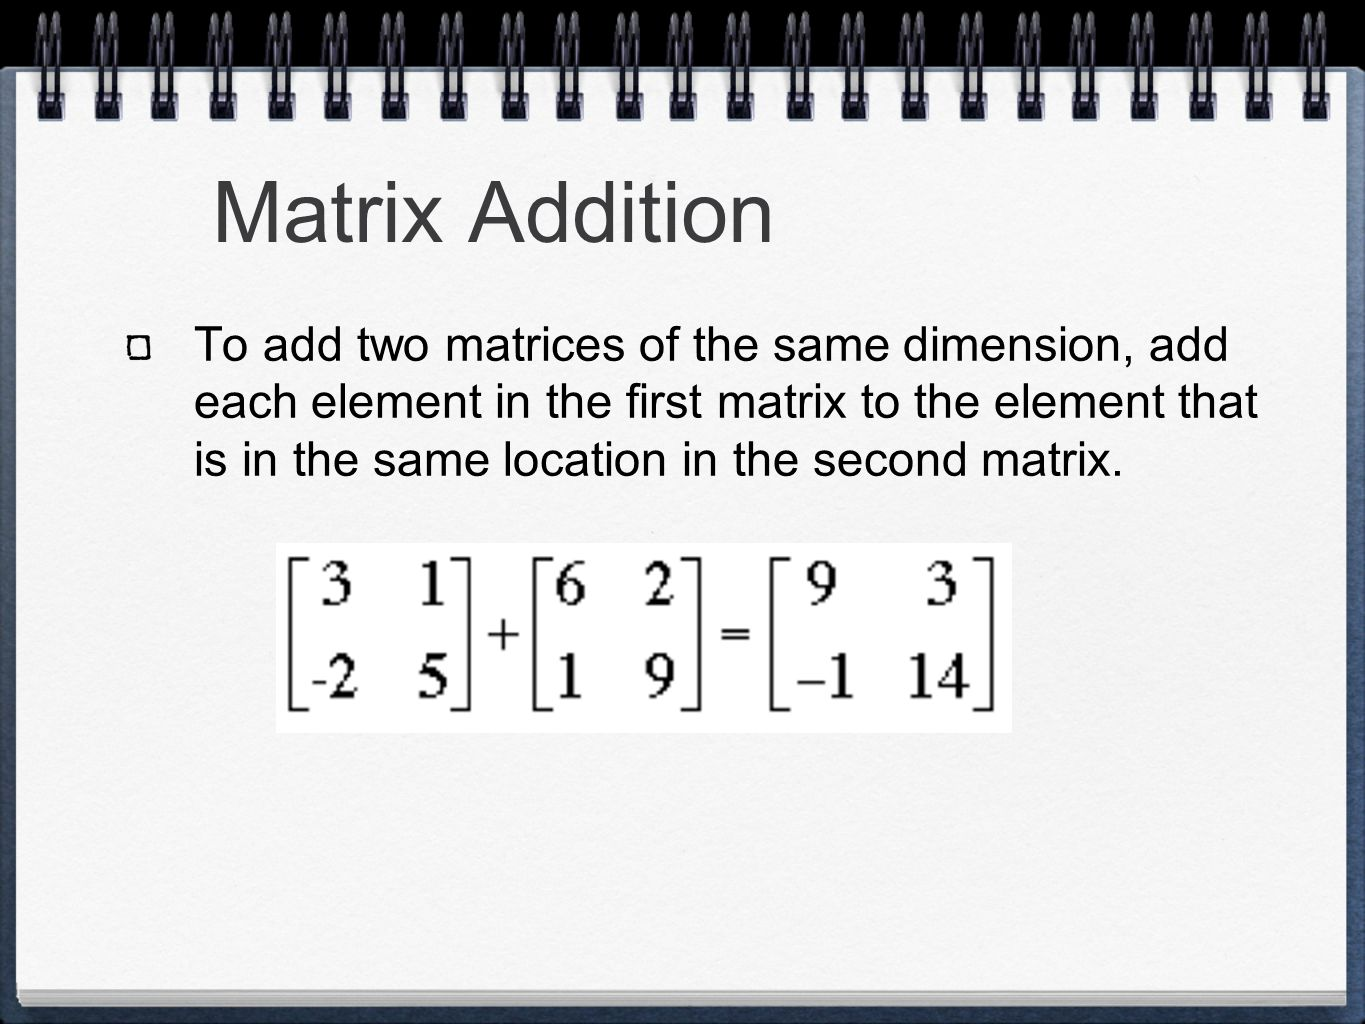 Matrix Addition To add two matrices of the same dimension, add each element in the first matrix to the element that is in the same location in the second matrix.